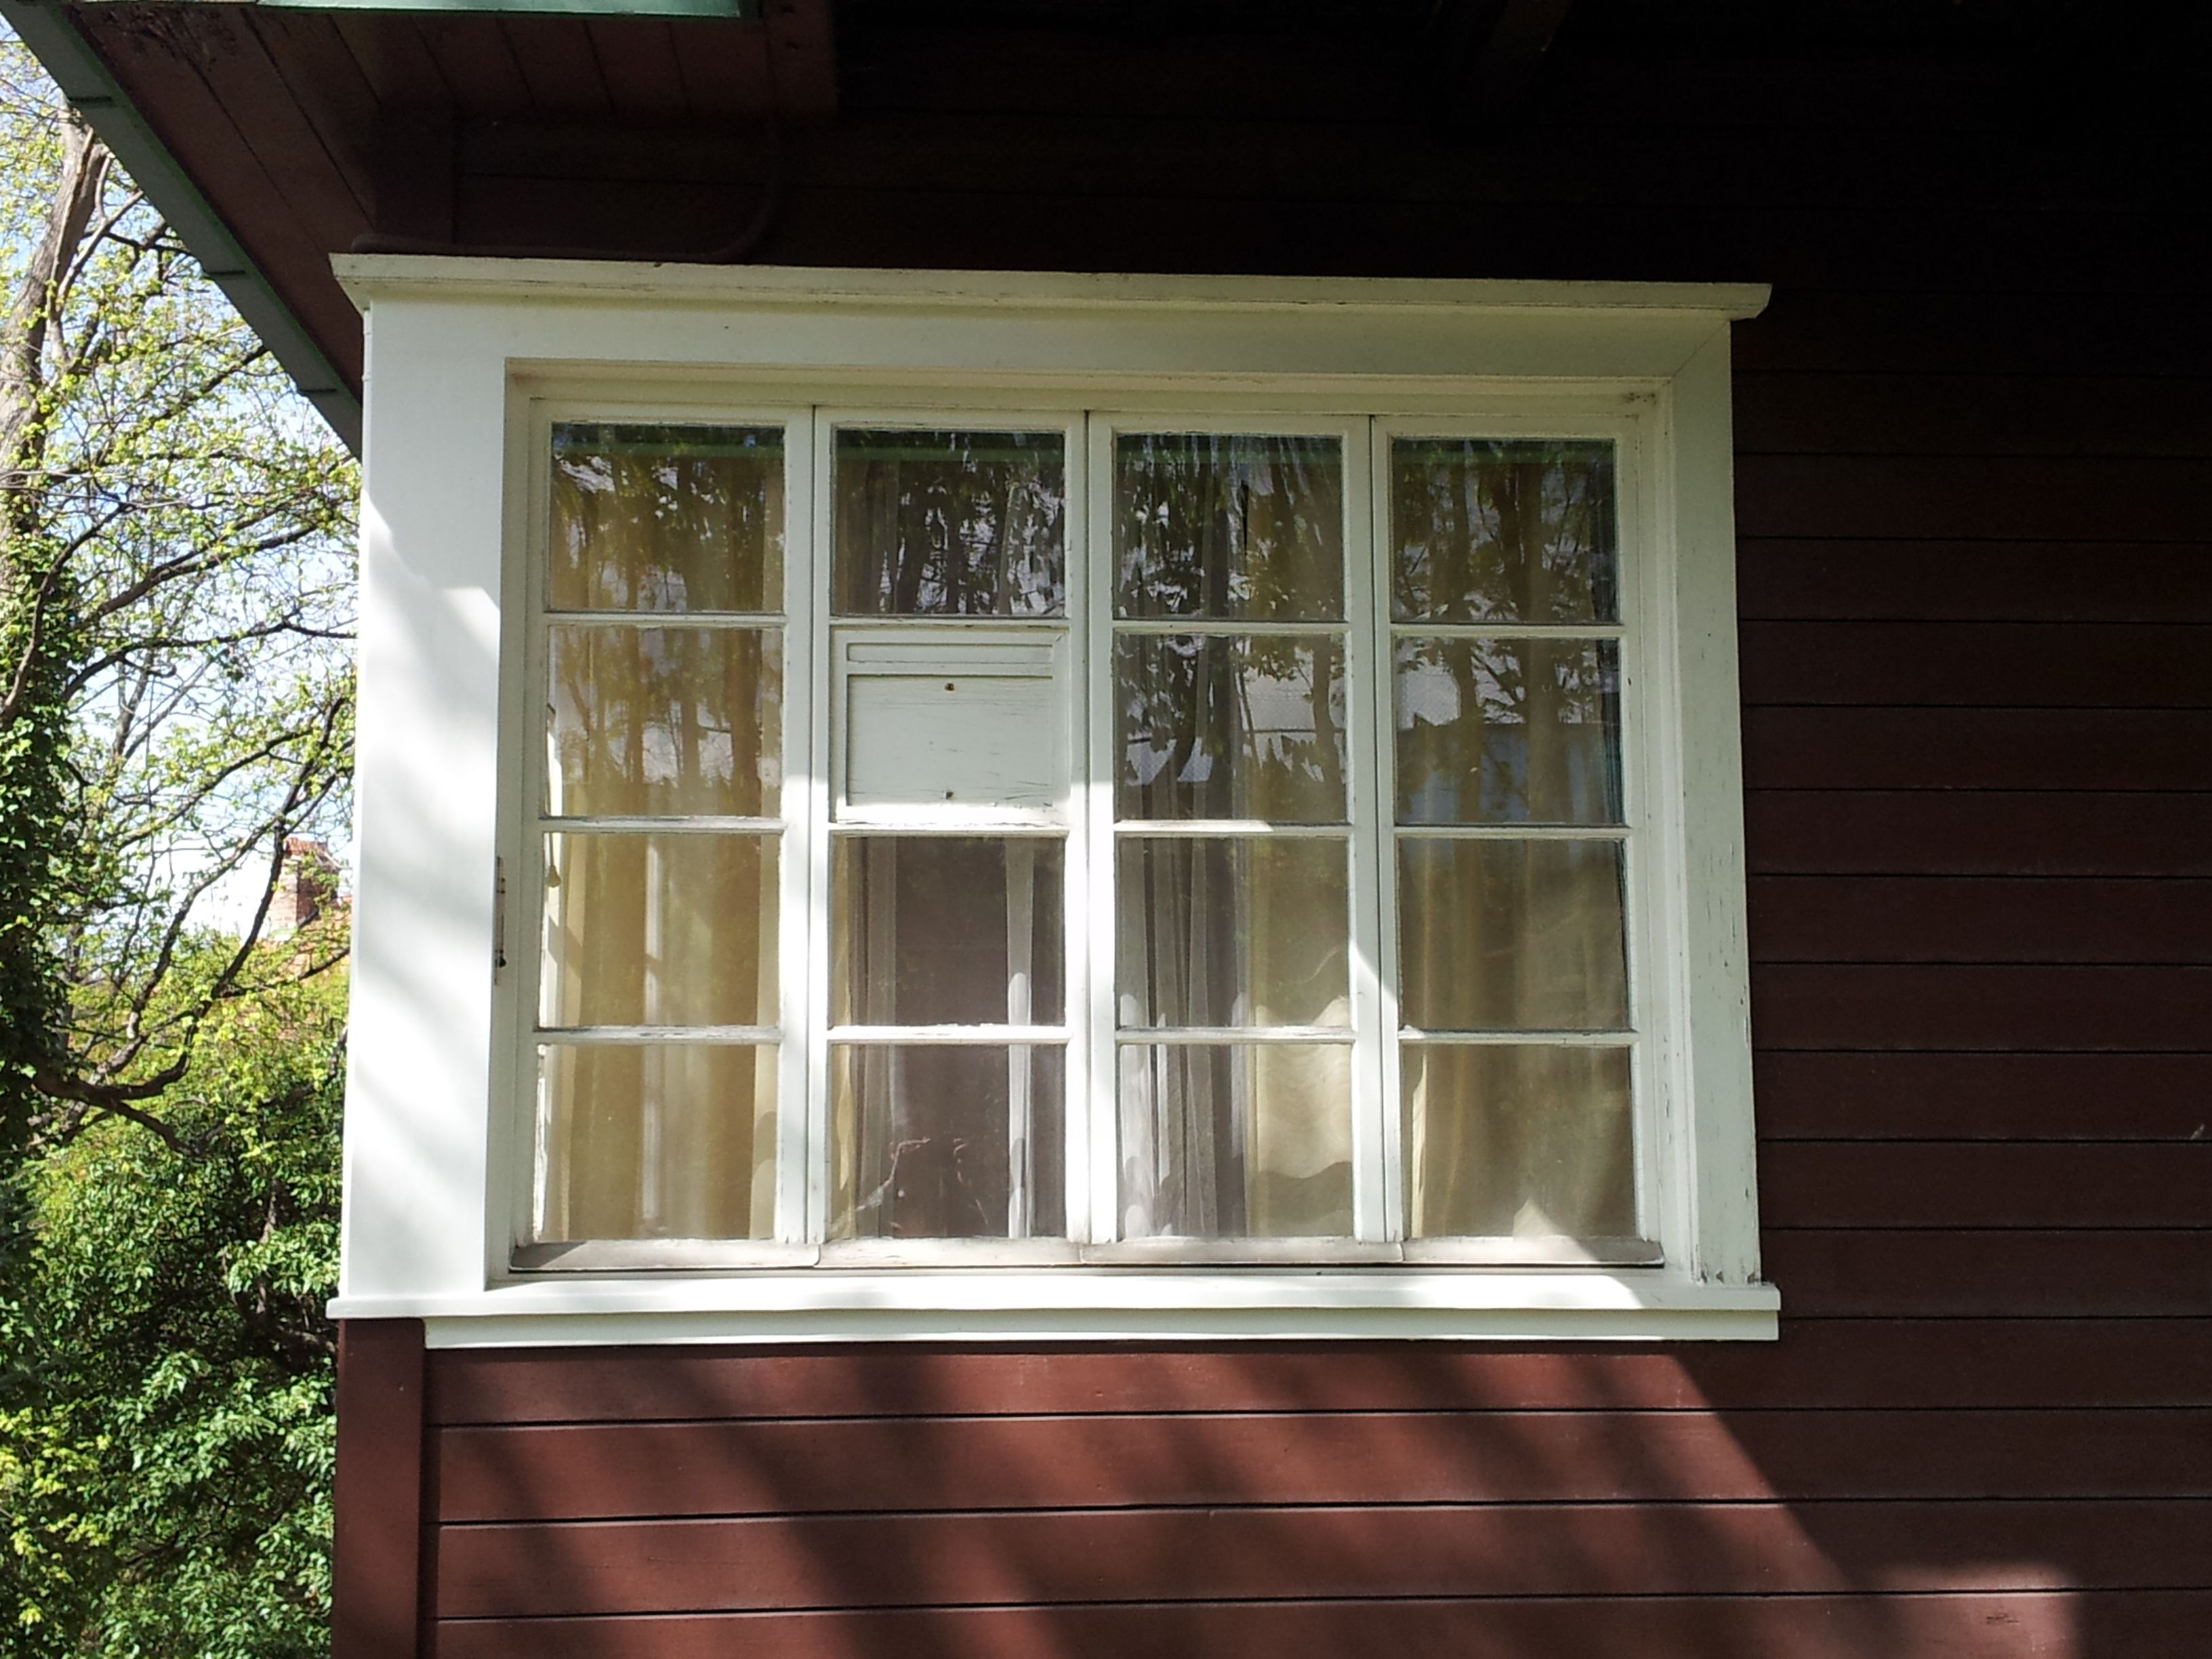 16 In 1 Corner Window With Wooden White Frames